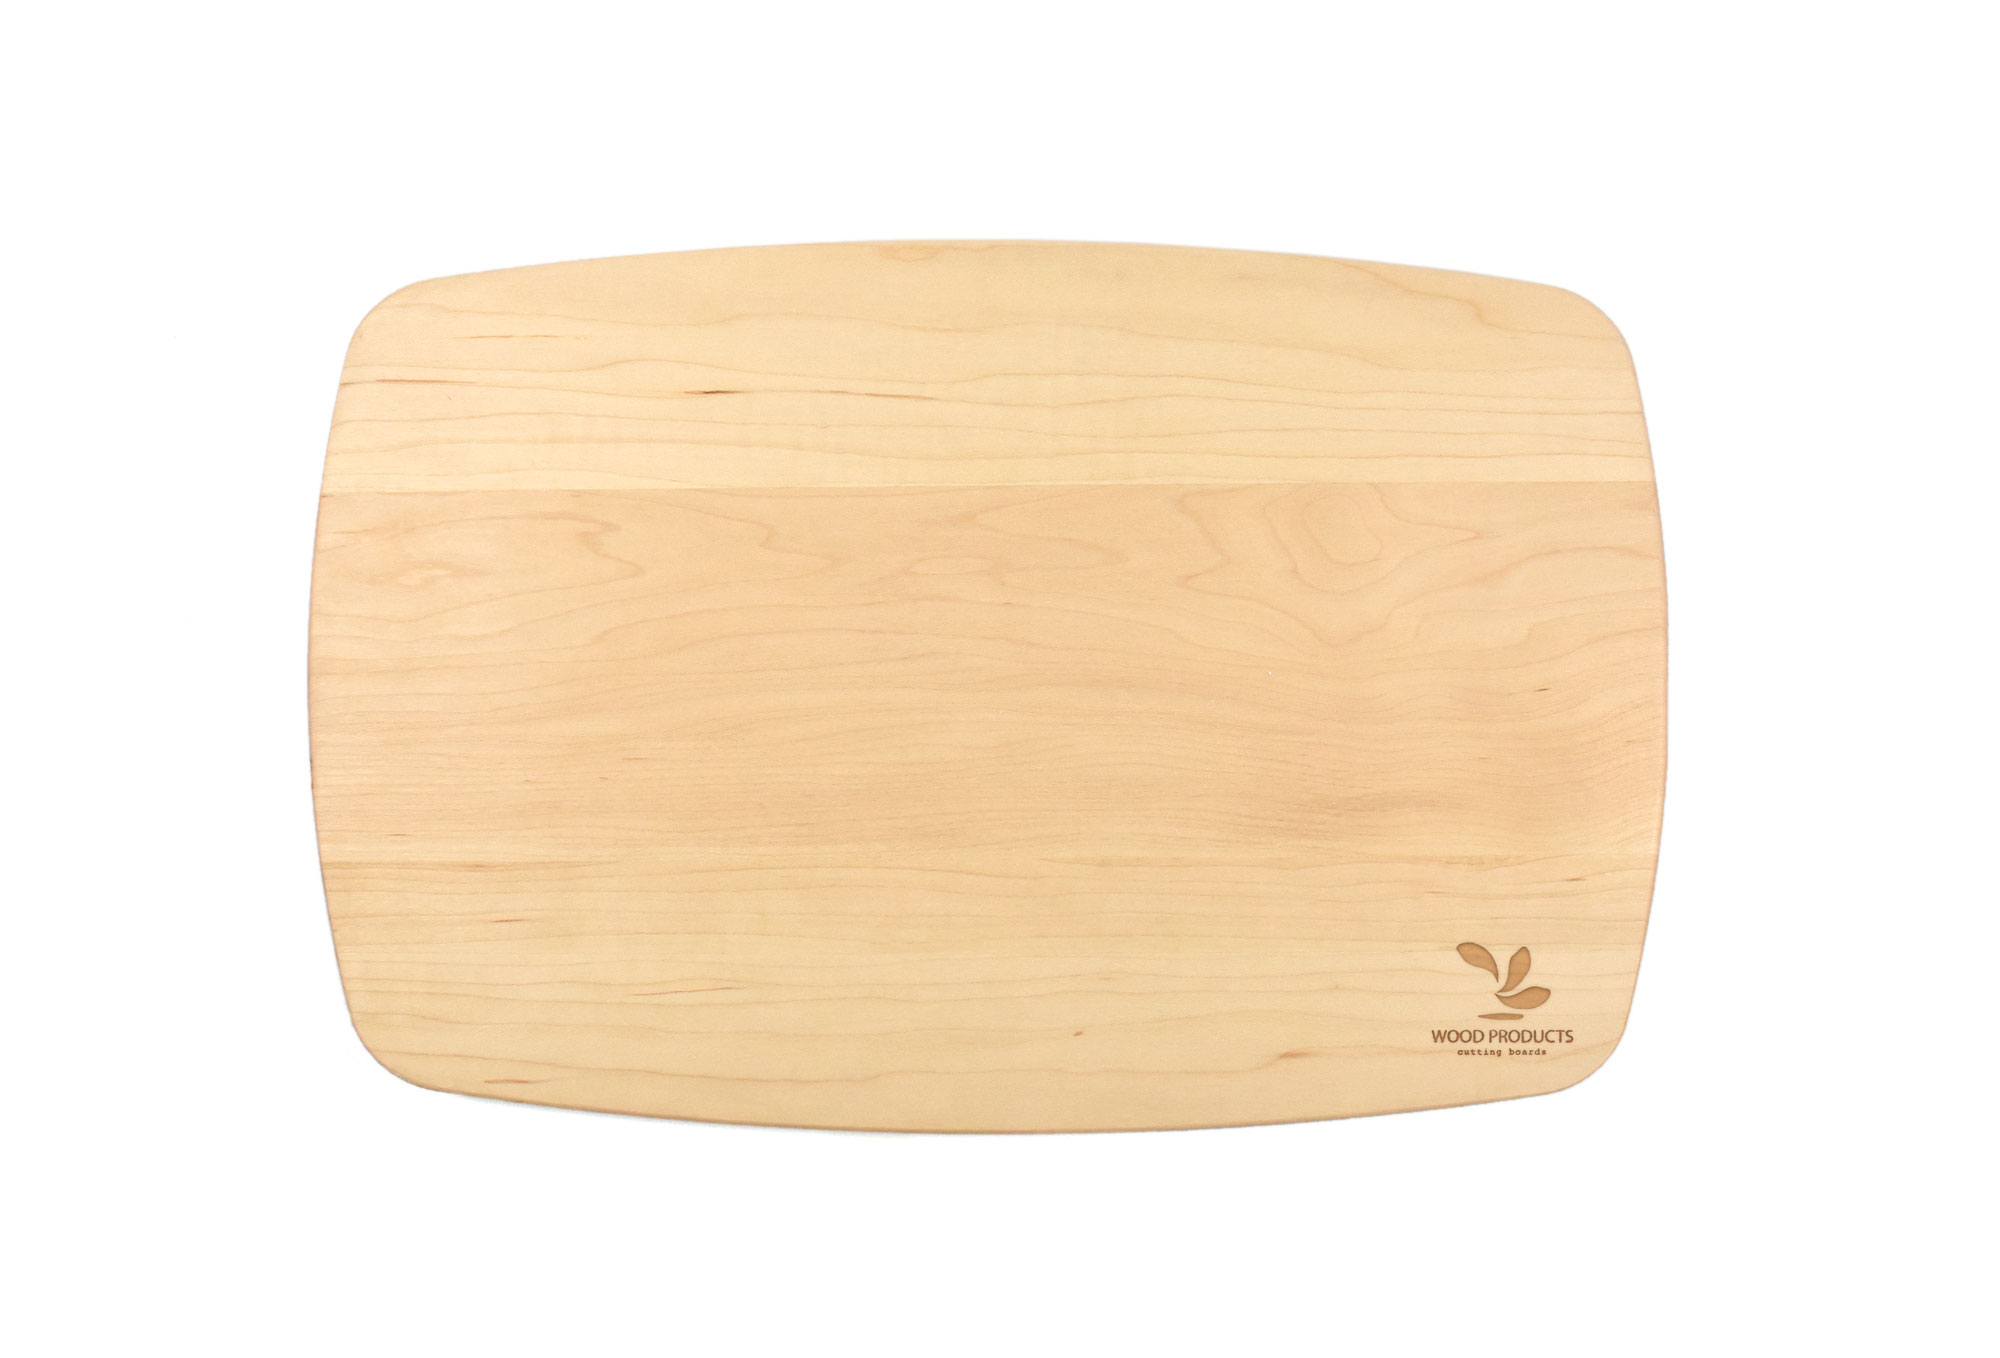 Maple large rectangular curved cutting board with rounded corners Engraved